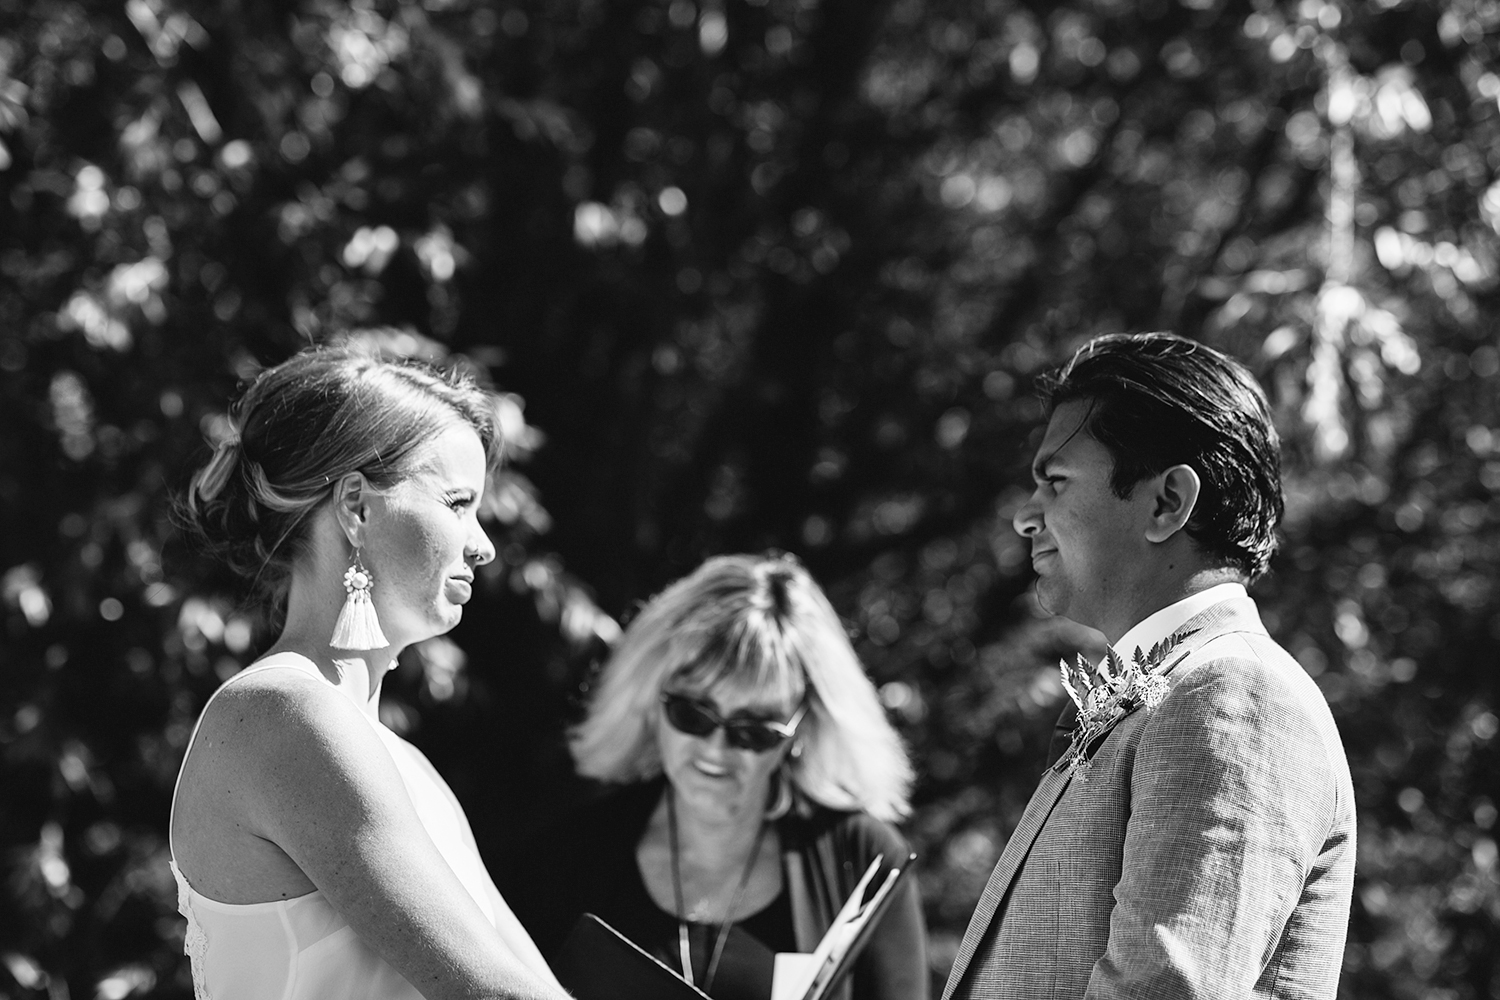 Best-Documentary-photojournalistic-wedding-photographers-Toronto-Ontario-Canada-Rural-Country-House-Backyard-Wedding-Ceremony-Vintage-aesthetic-bride-and-groom-saying-vows-bw.jpg